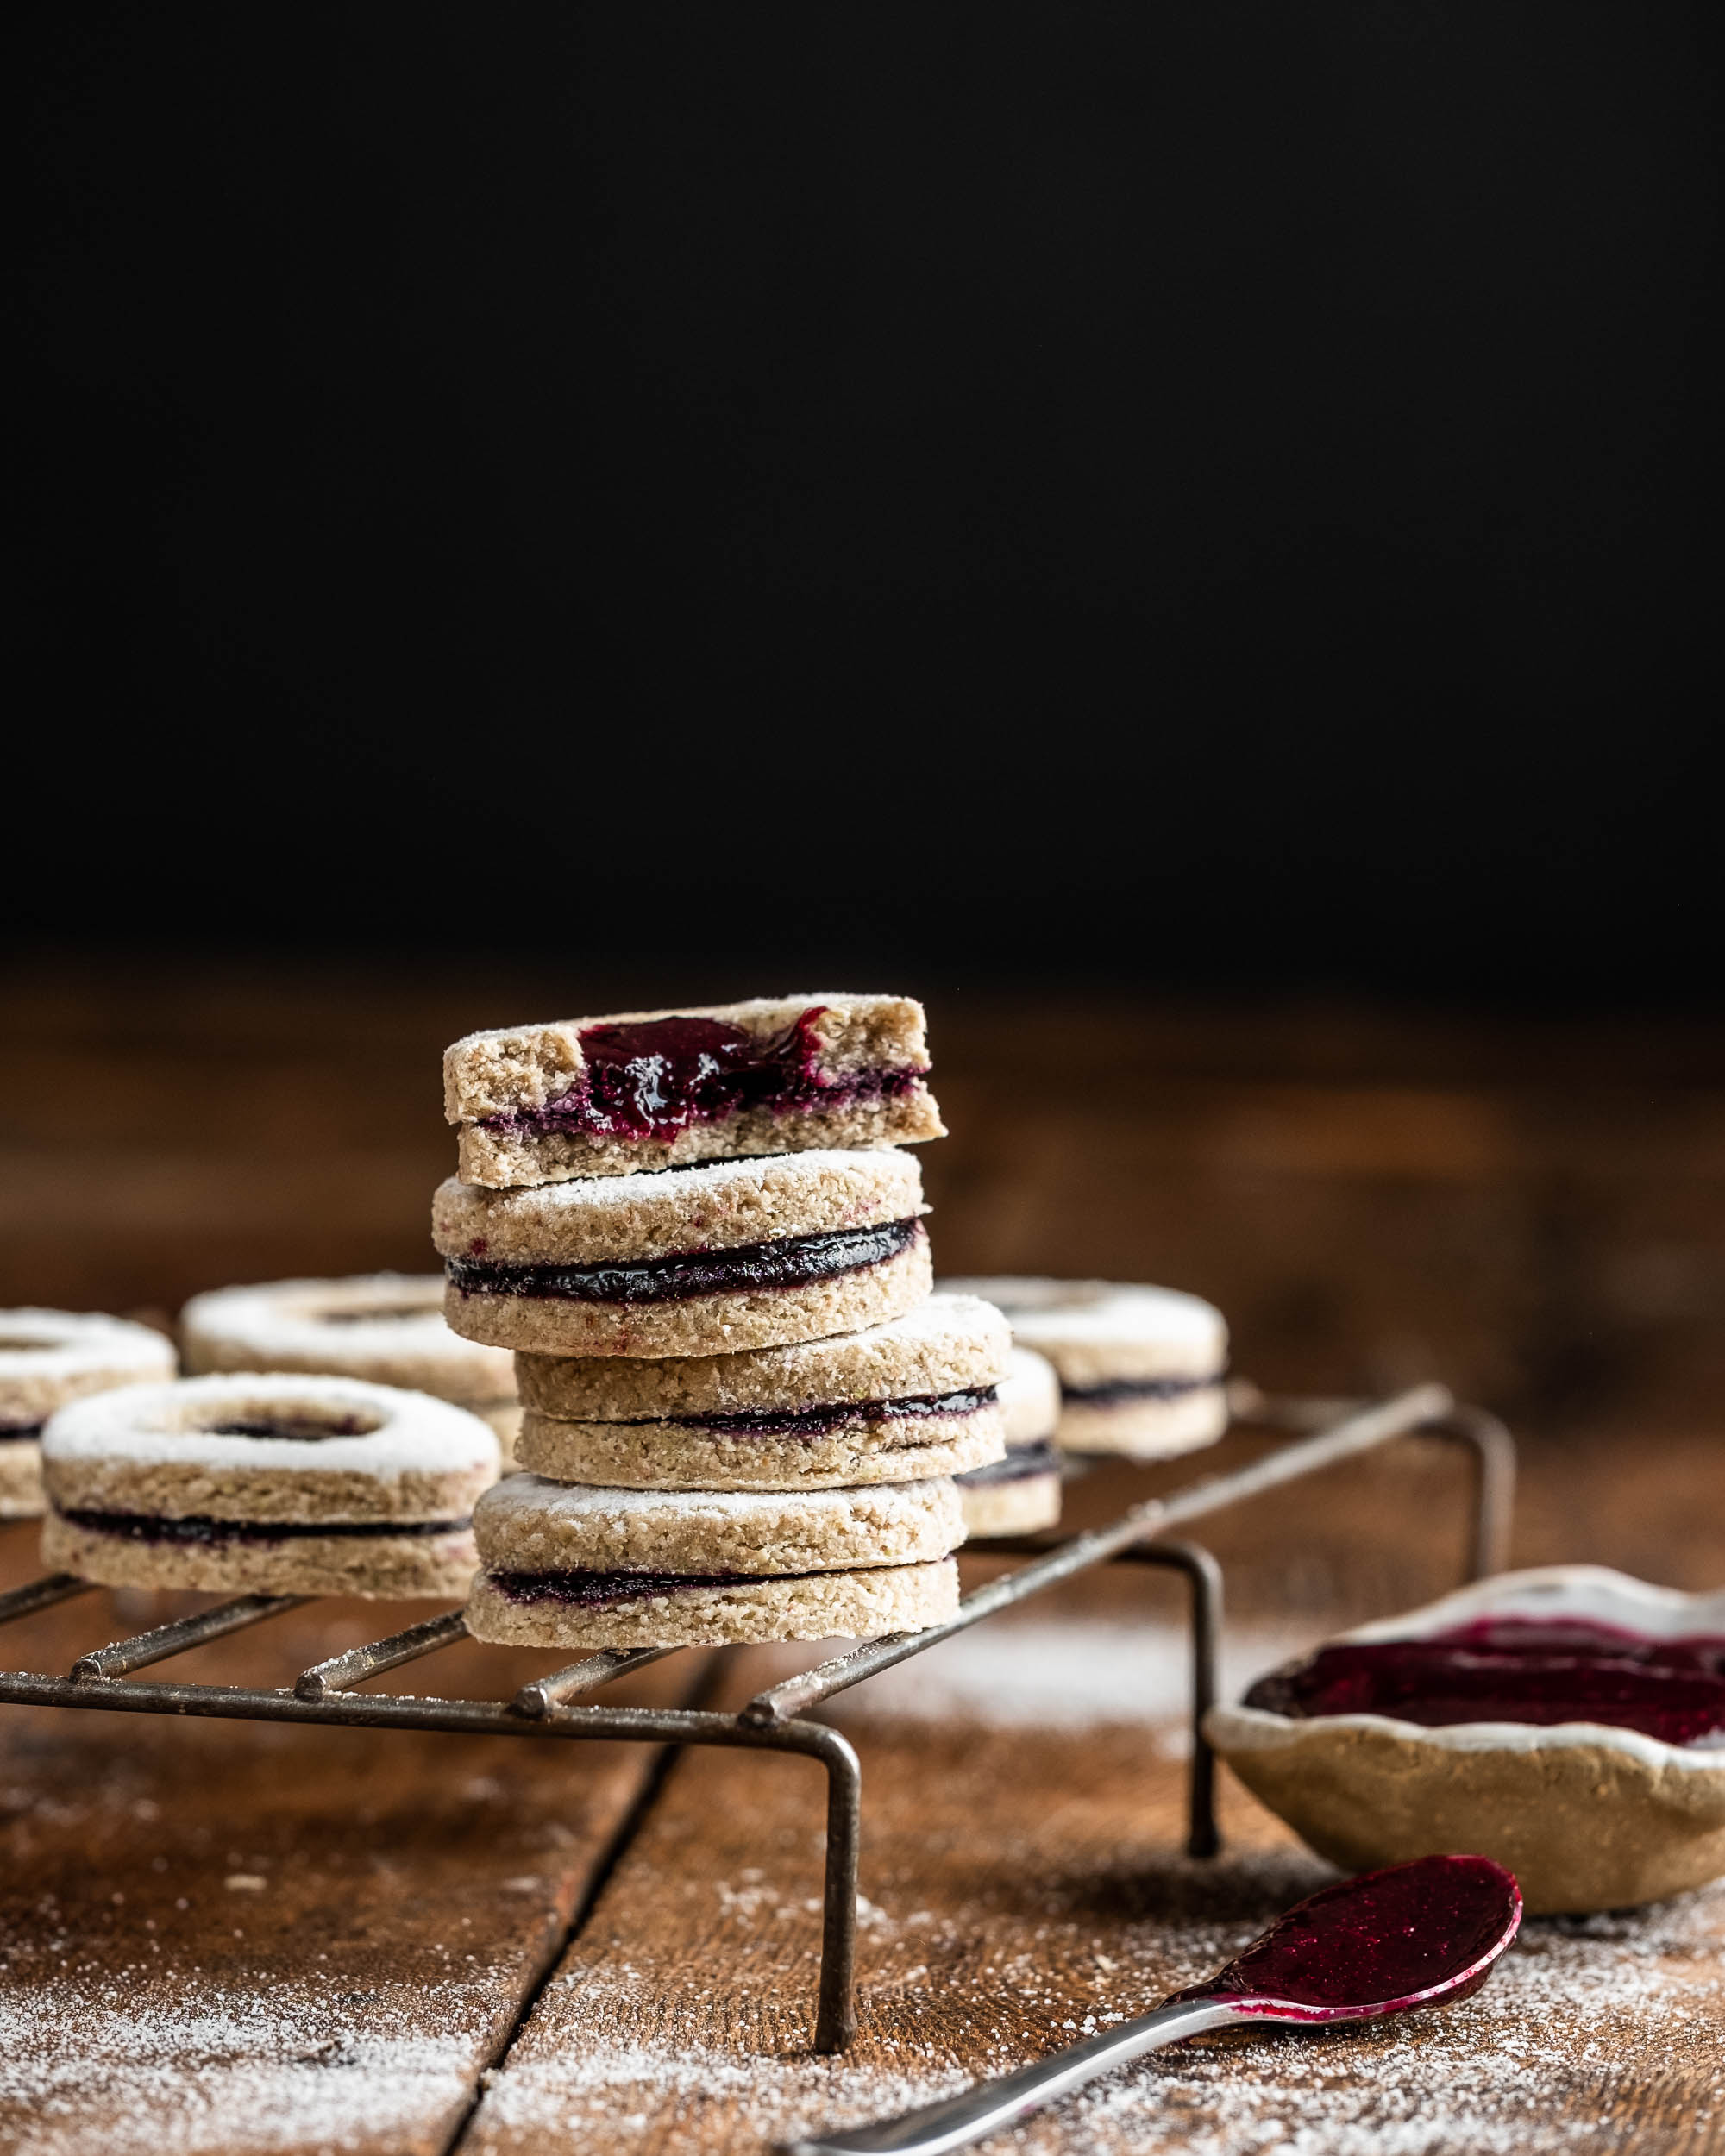 Raw linzer cookies on a wire tray and wooden table